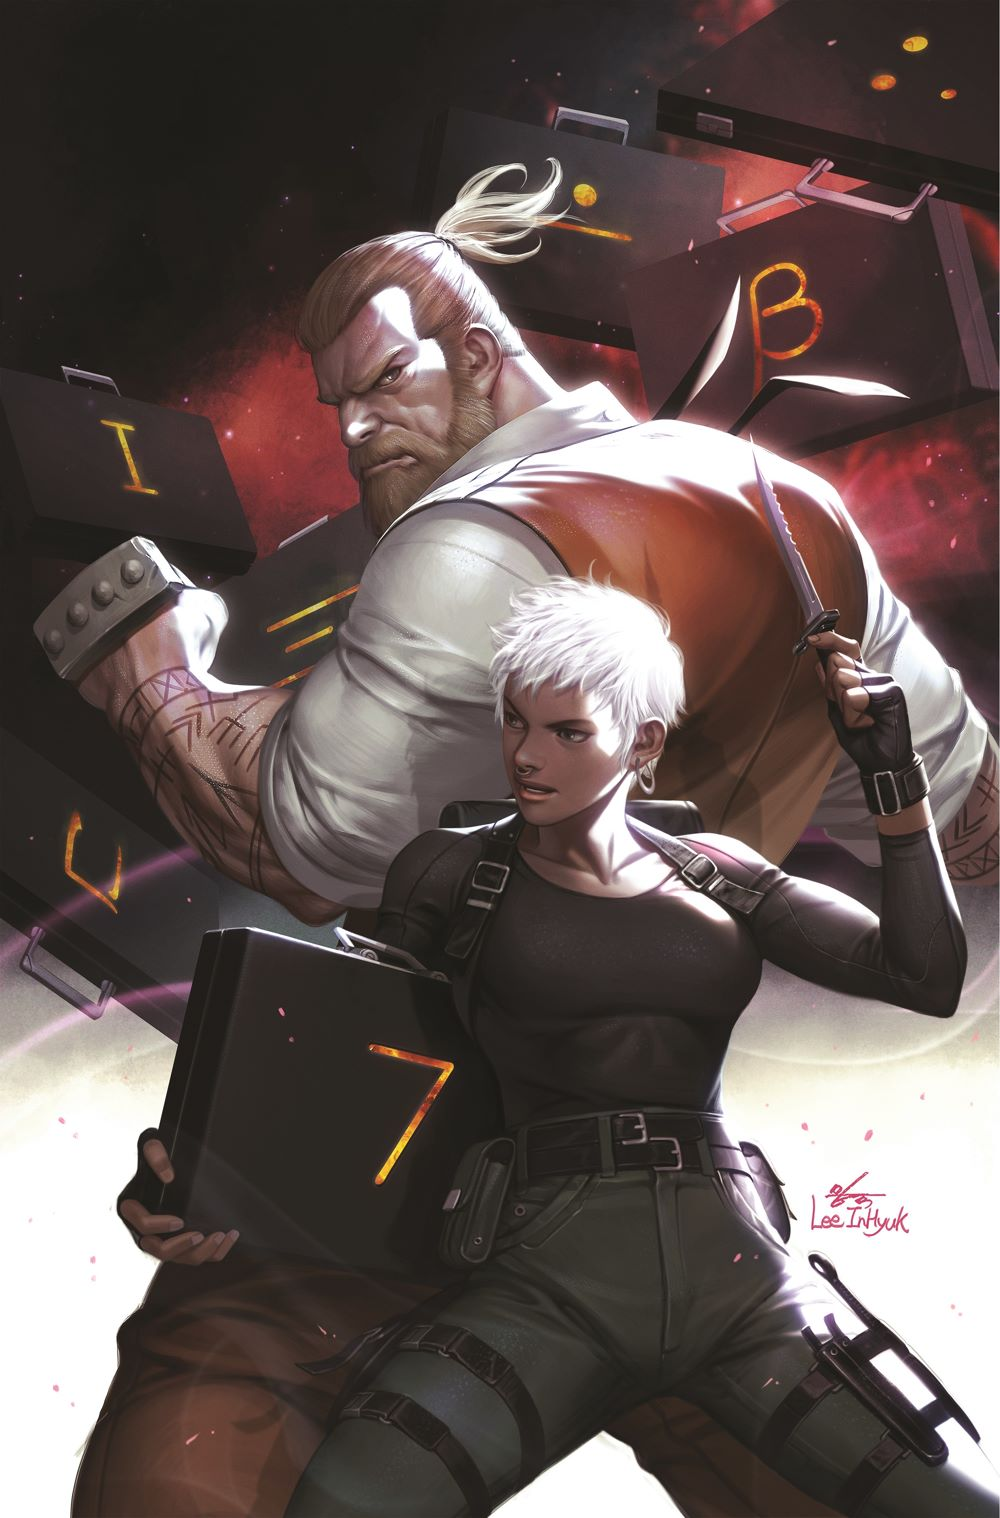 2a08d5a4-8842-4118-bc34-210d07ac9622 BOOM! Studios reveals trailer and and InHyuk Lee variant cover for SEVEN SECRETS #1